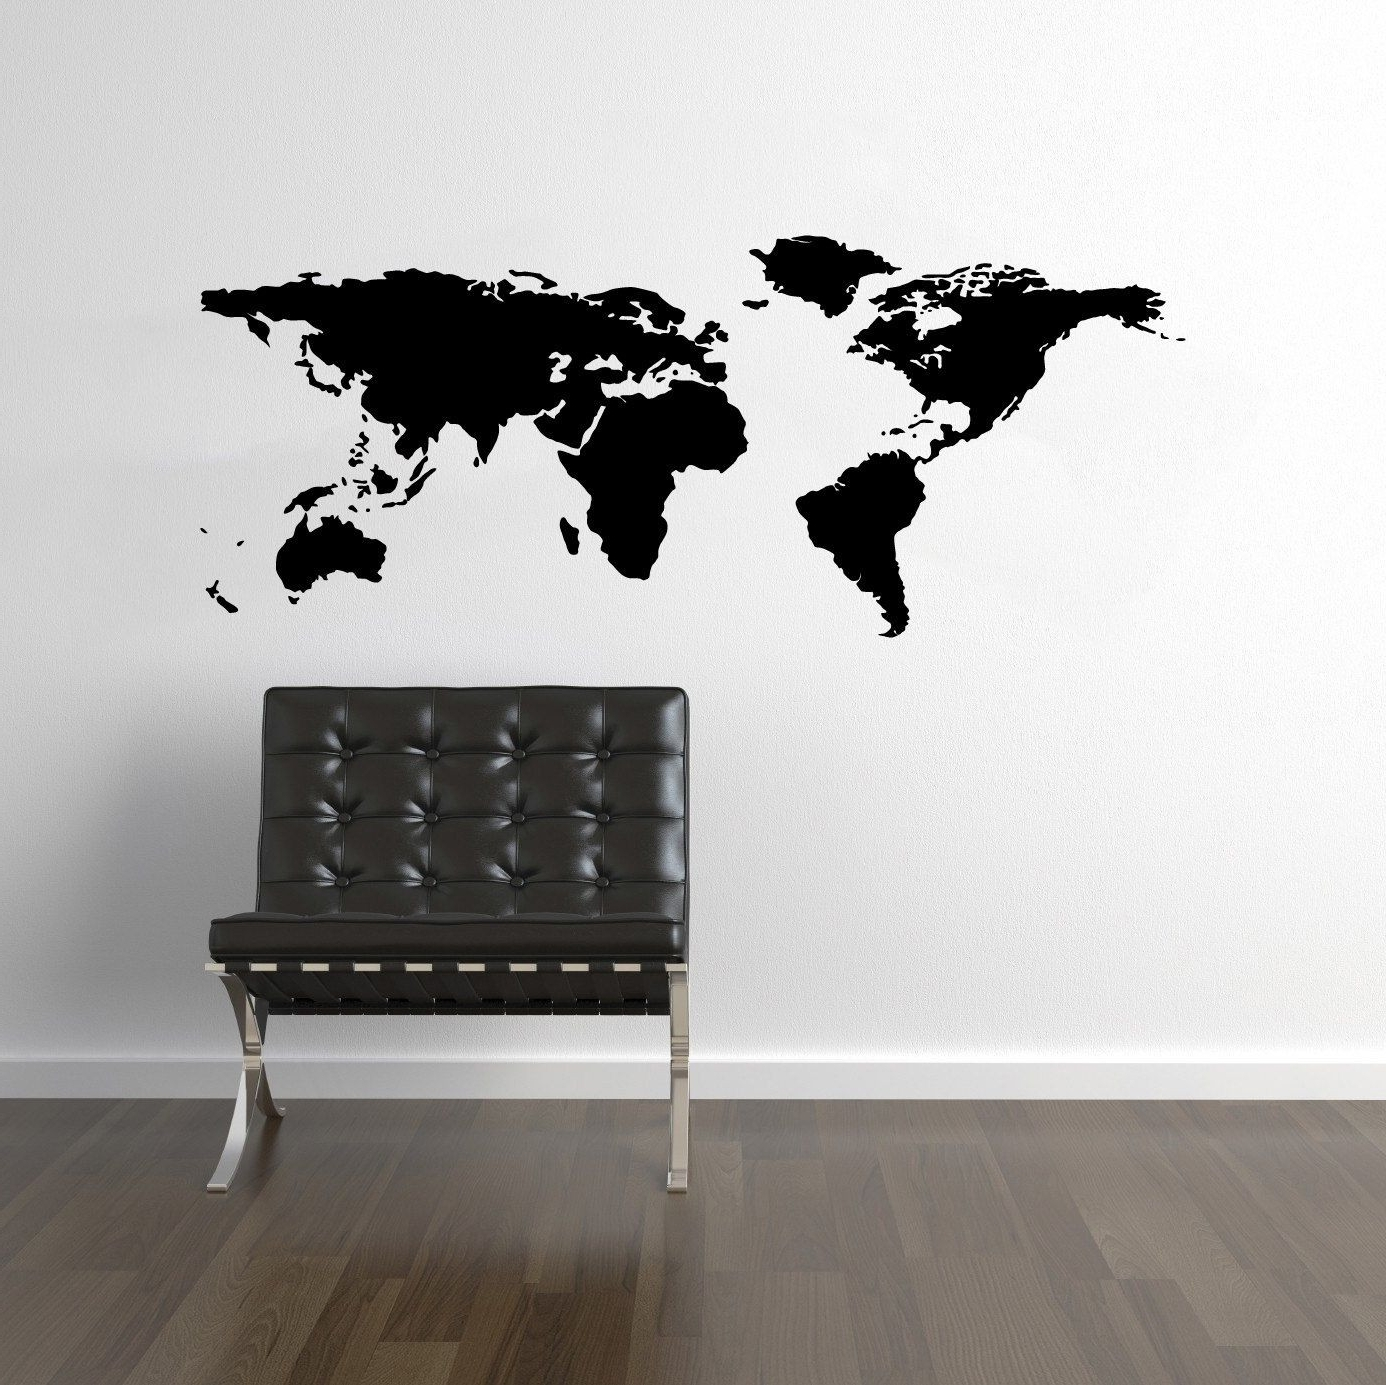 World Map Wall Decal Travel Wall Decor Map Wall Sticker Wal Design In Latest Wall Art Stickers World Map (View 7 of 15)